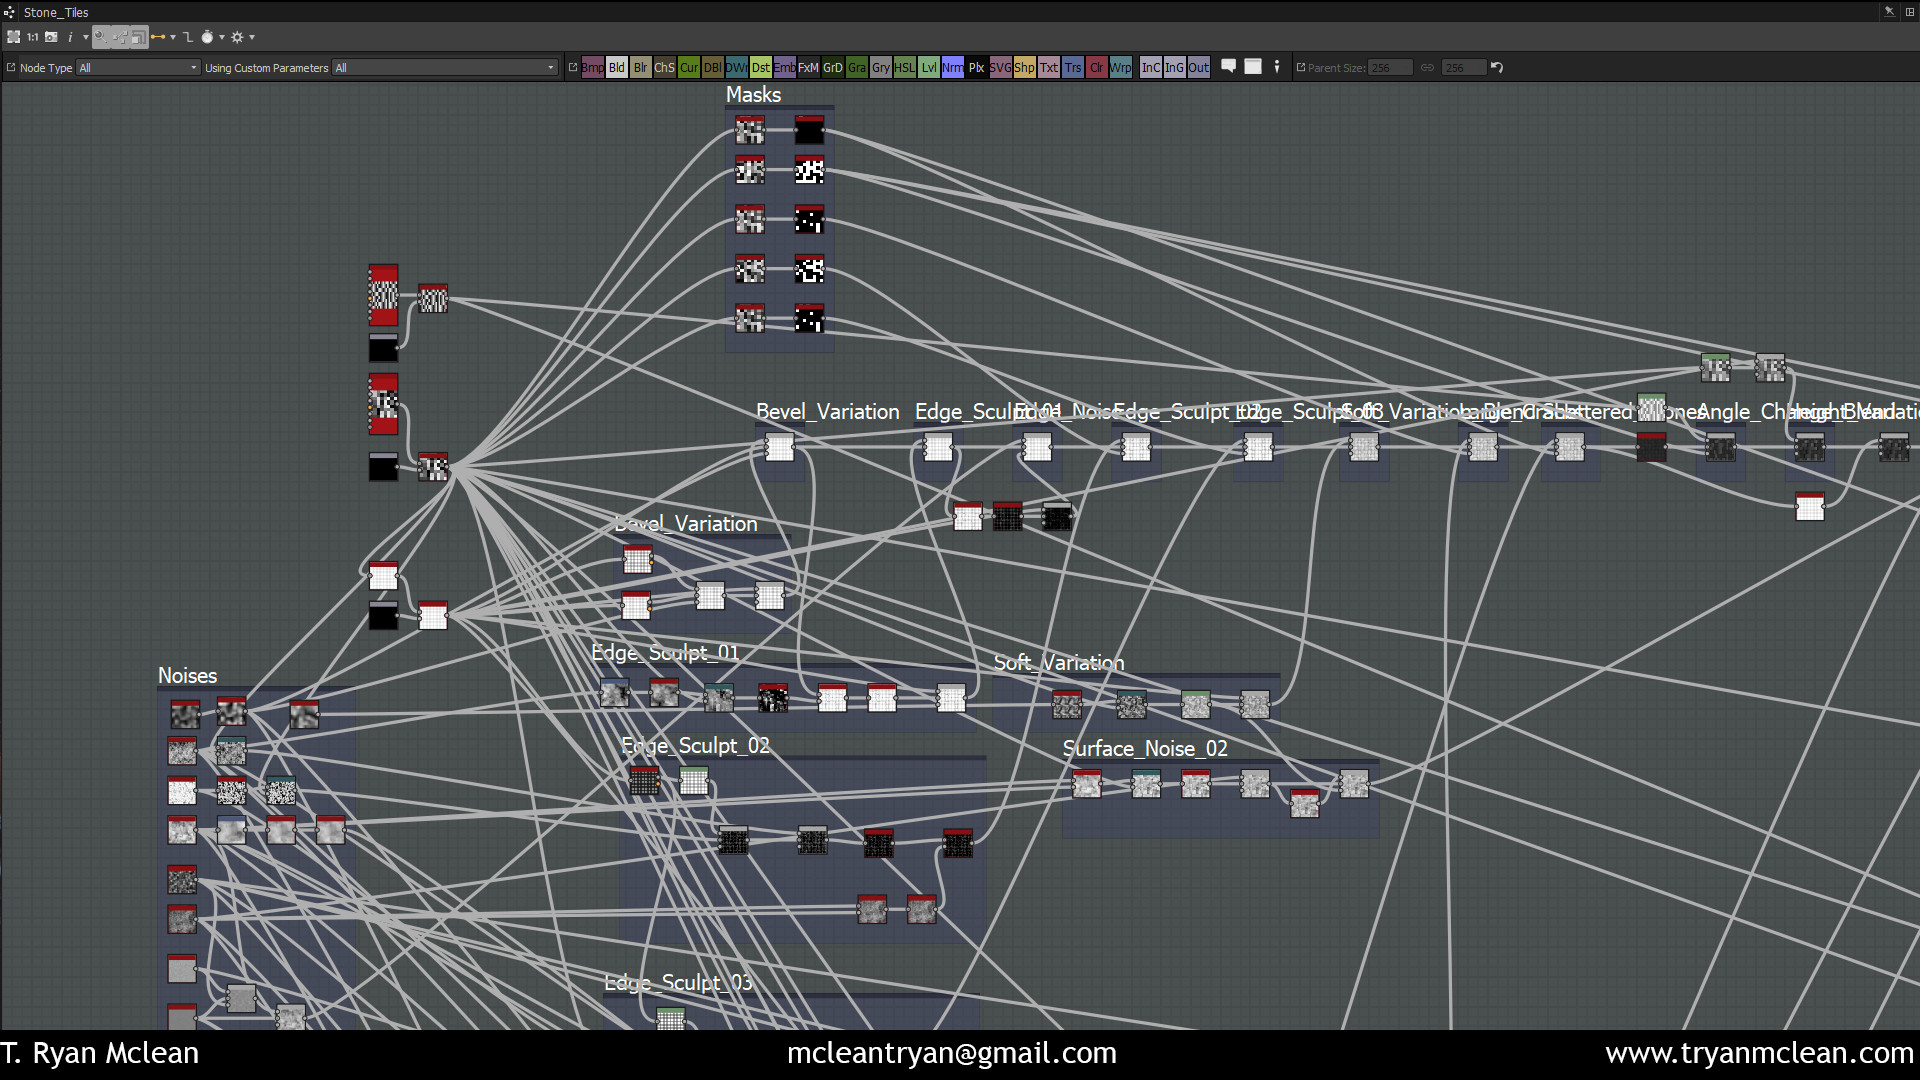 Top of the Substance node structure. Starting with tile samplers and working through to edge sculpting.